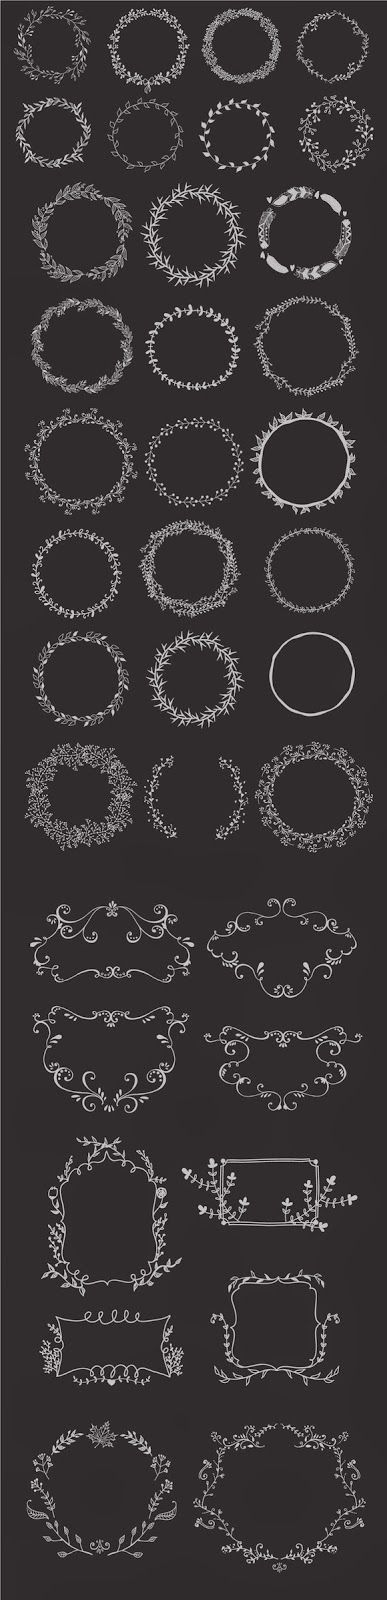 Hand drawn wreaths and frames | Freebies PSD